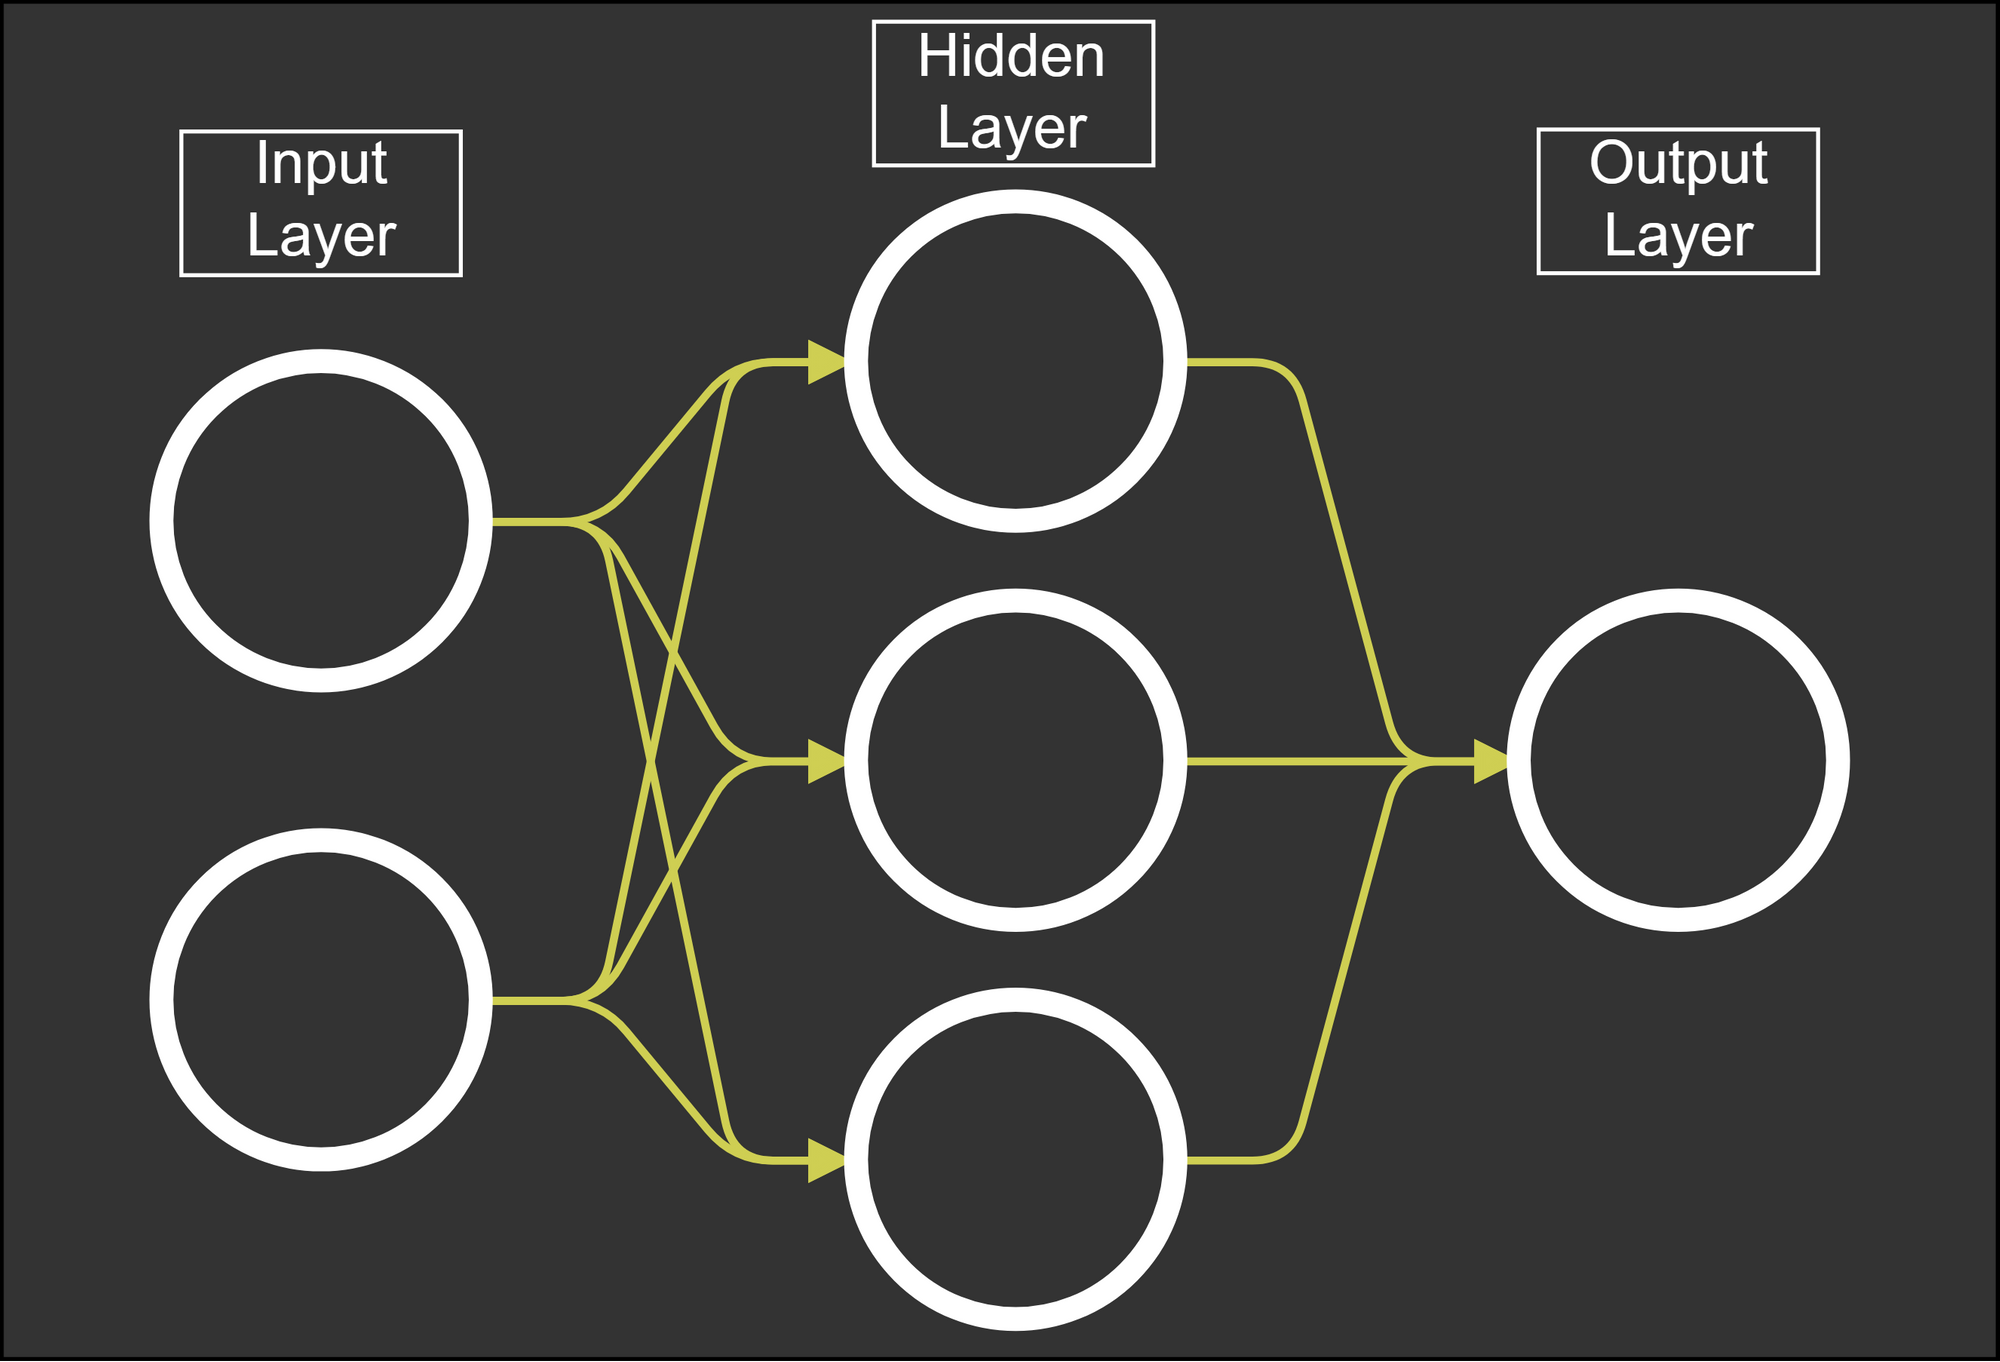 a simple neural network, with one input, hidden and output layer